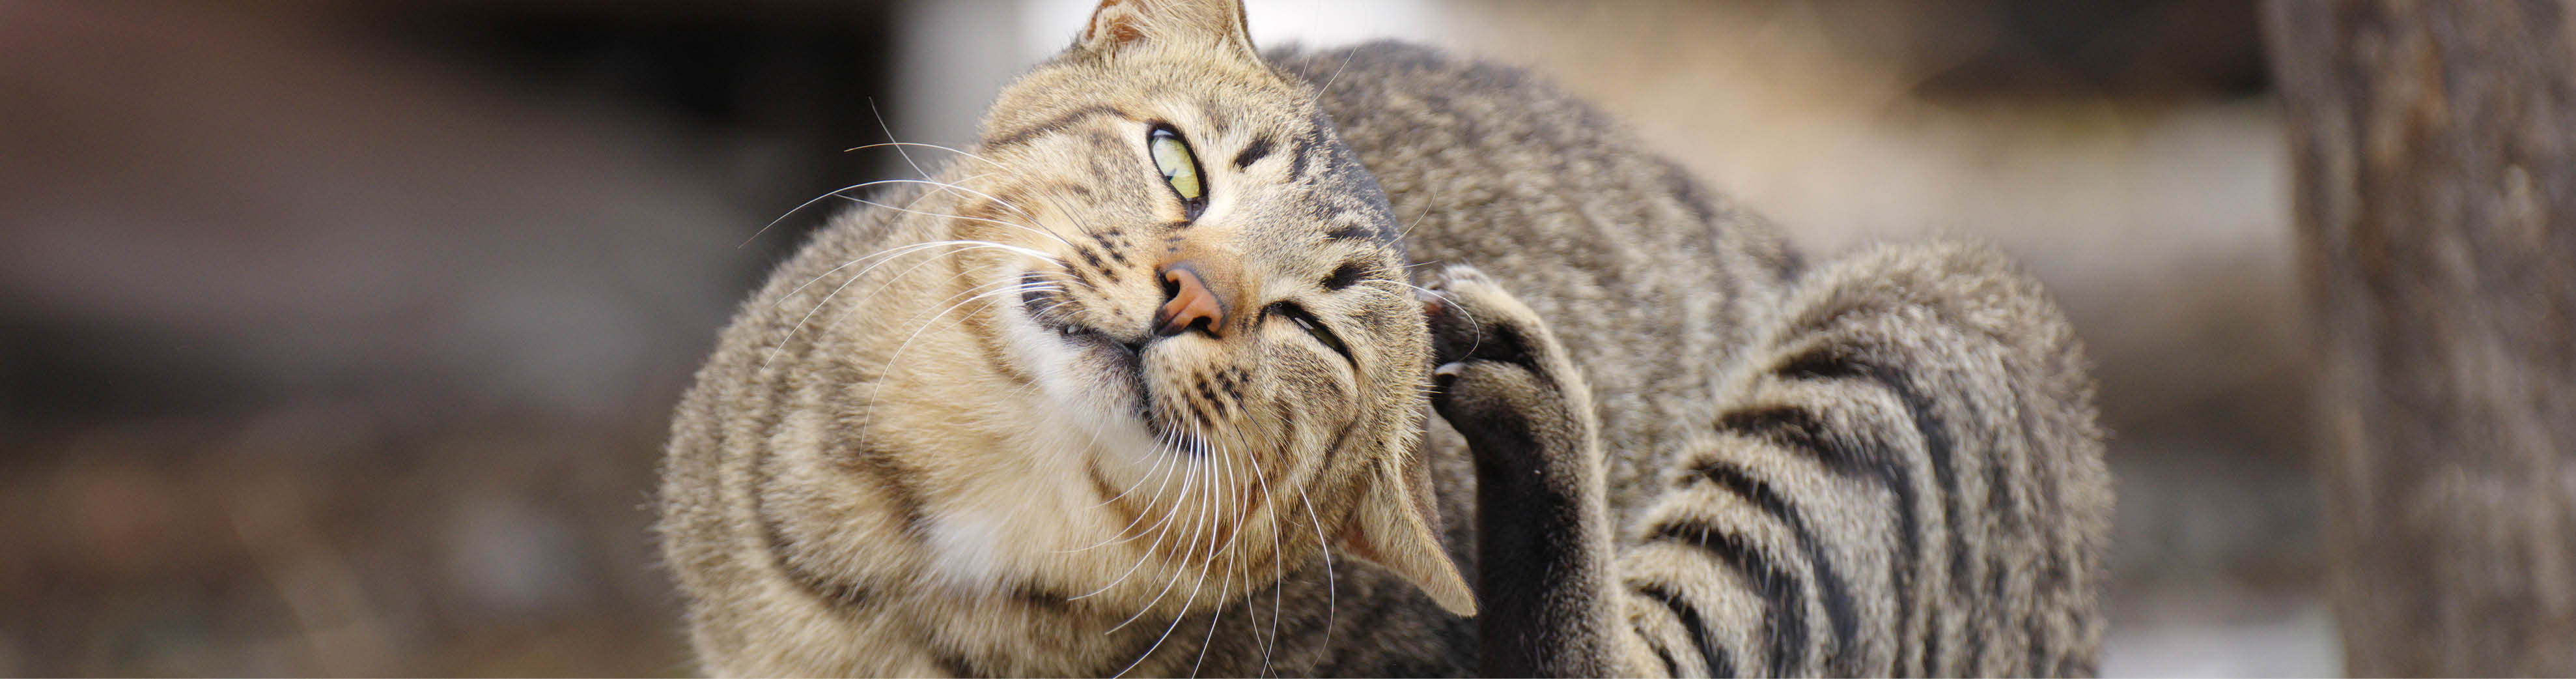 How to choose the right parasite protection for your cat